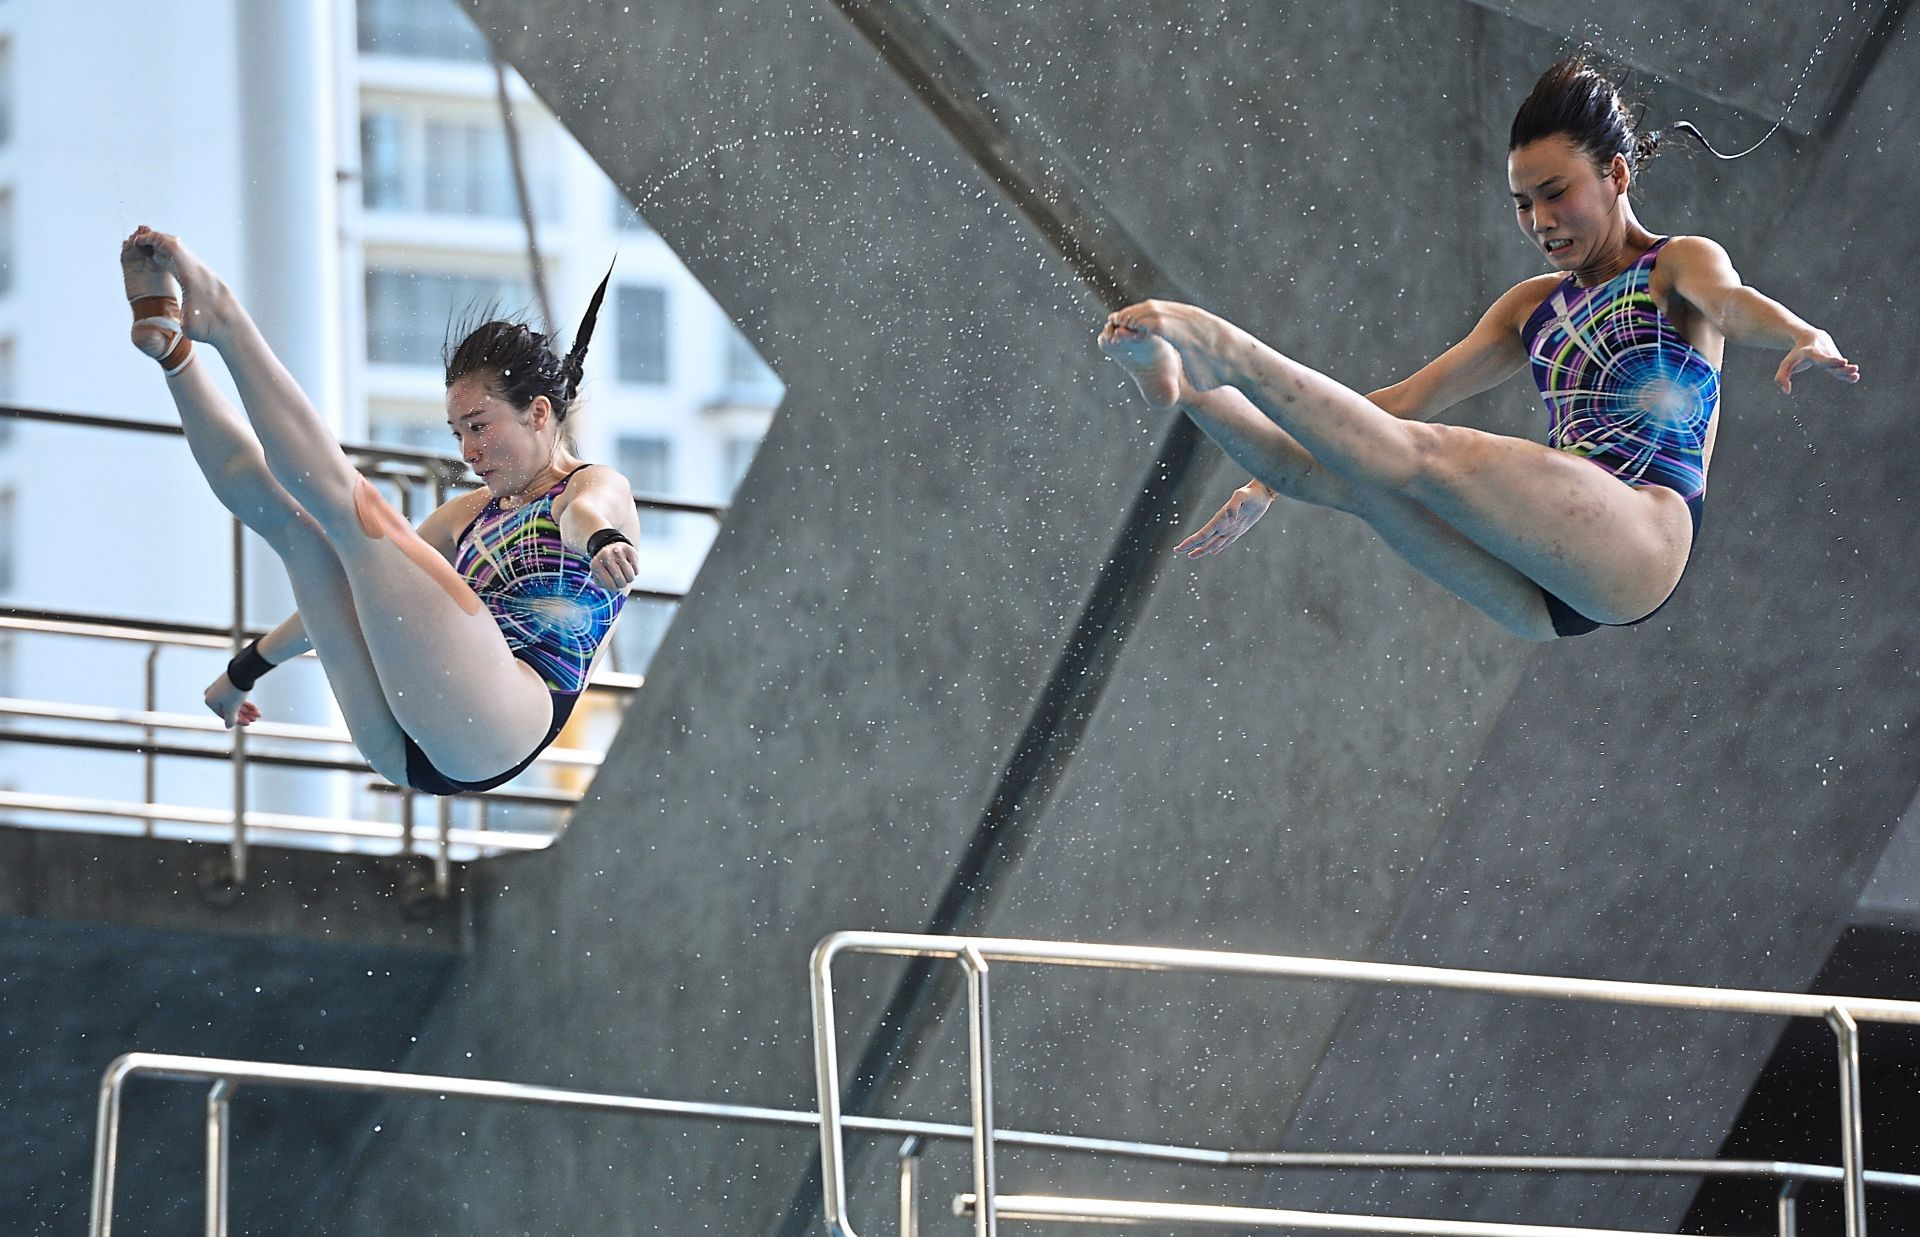 Third best: Loh Zhiayi and Jasmine Lai picked up the bronze in the 3m springboard synchro final. — RAJA FAISAL HISHAN/The Star